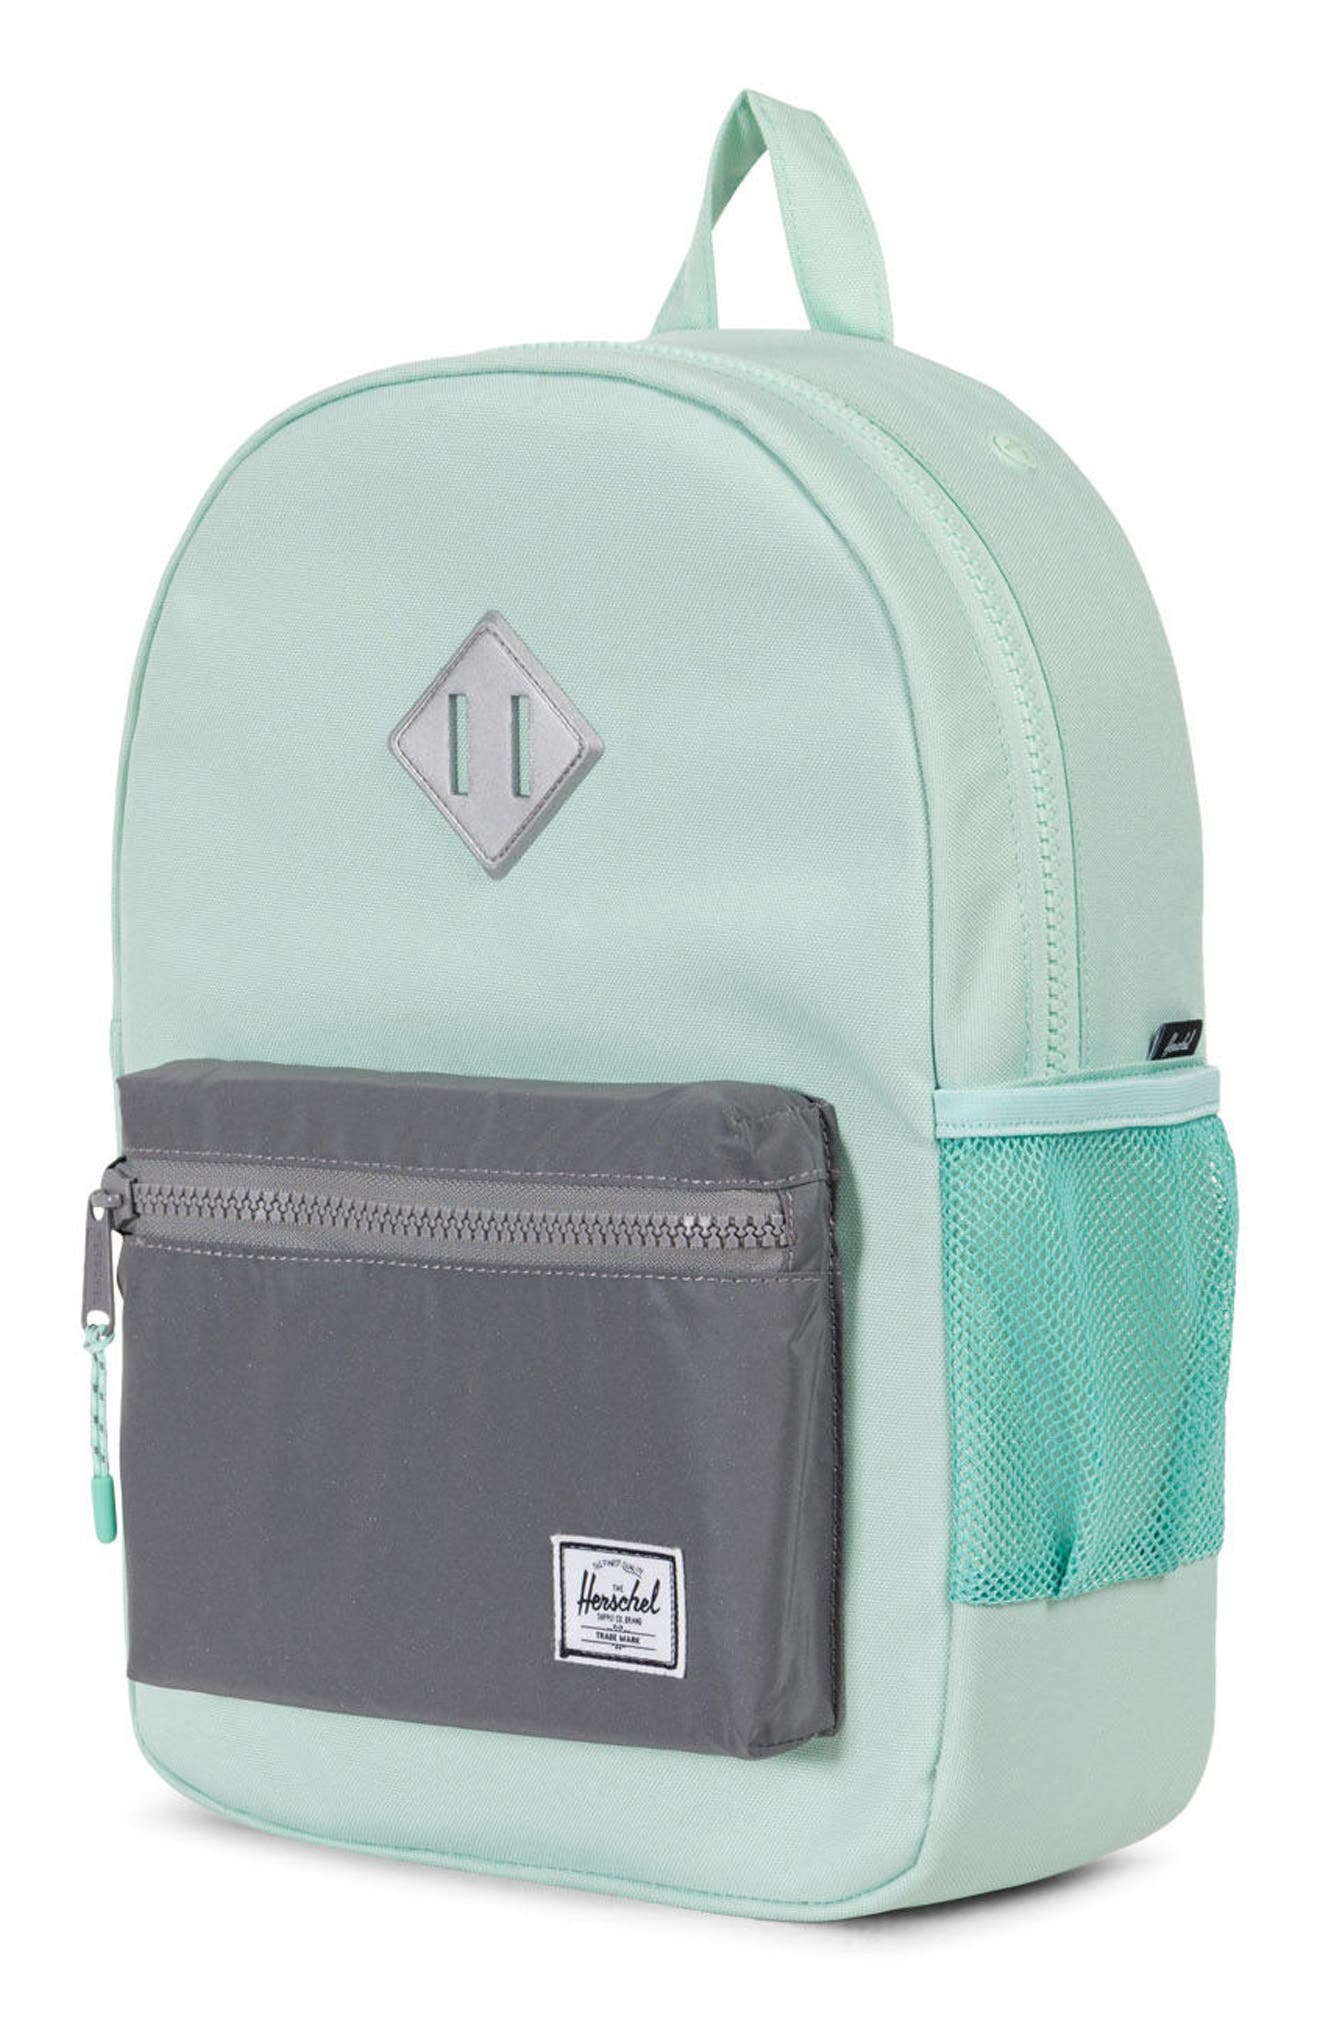 Heritage Backpack,                             Alternate thumbnail 3, color,                             Yucca/ Reflective Rubber